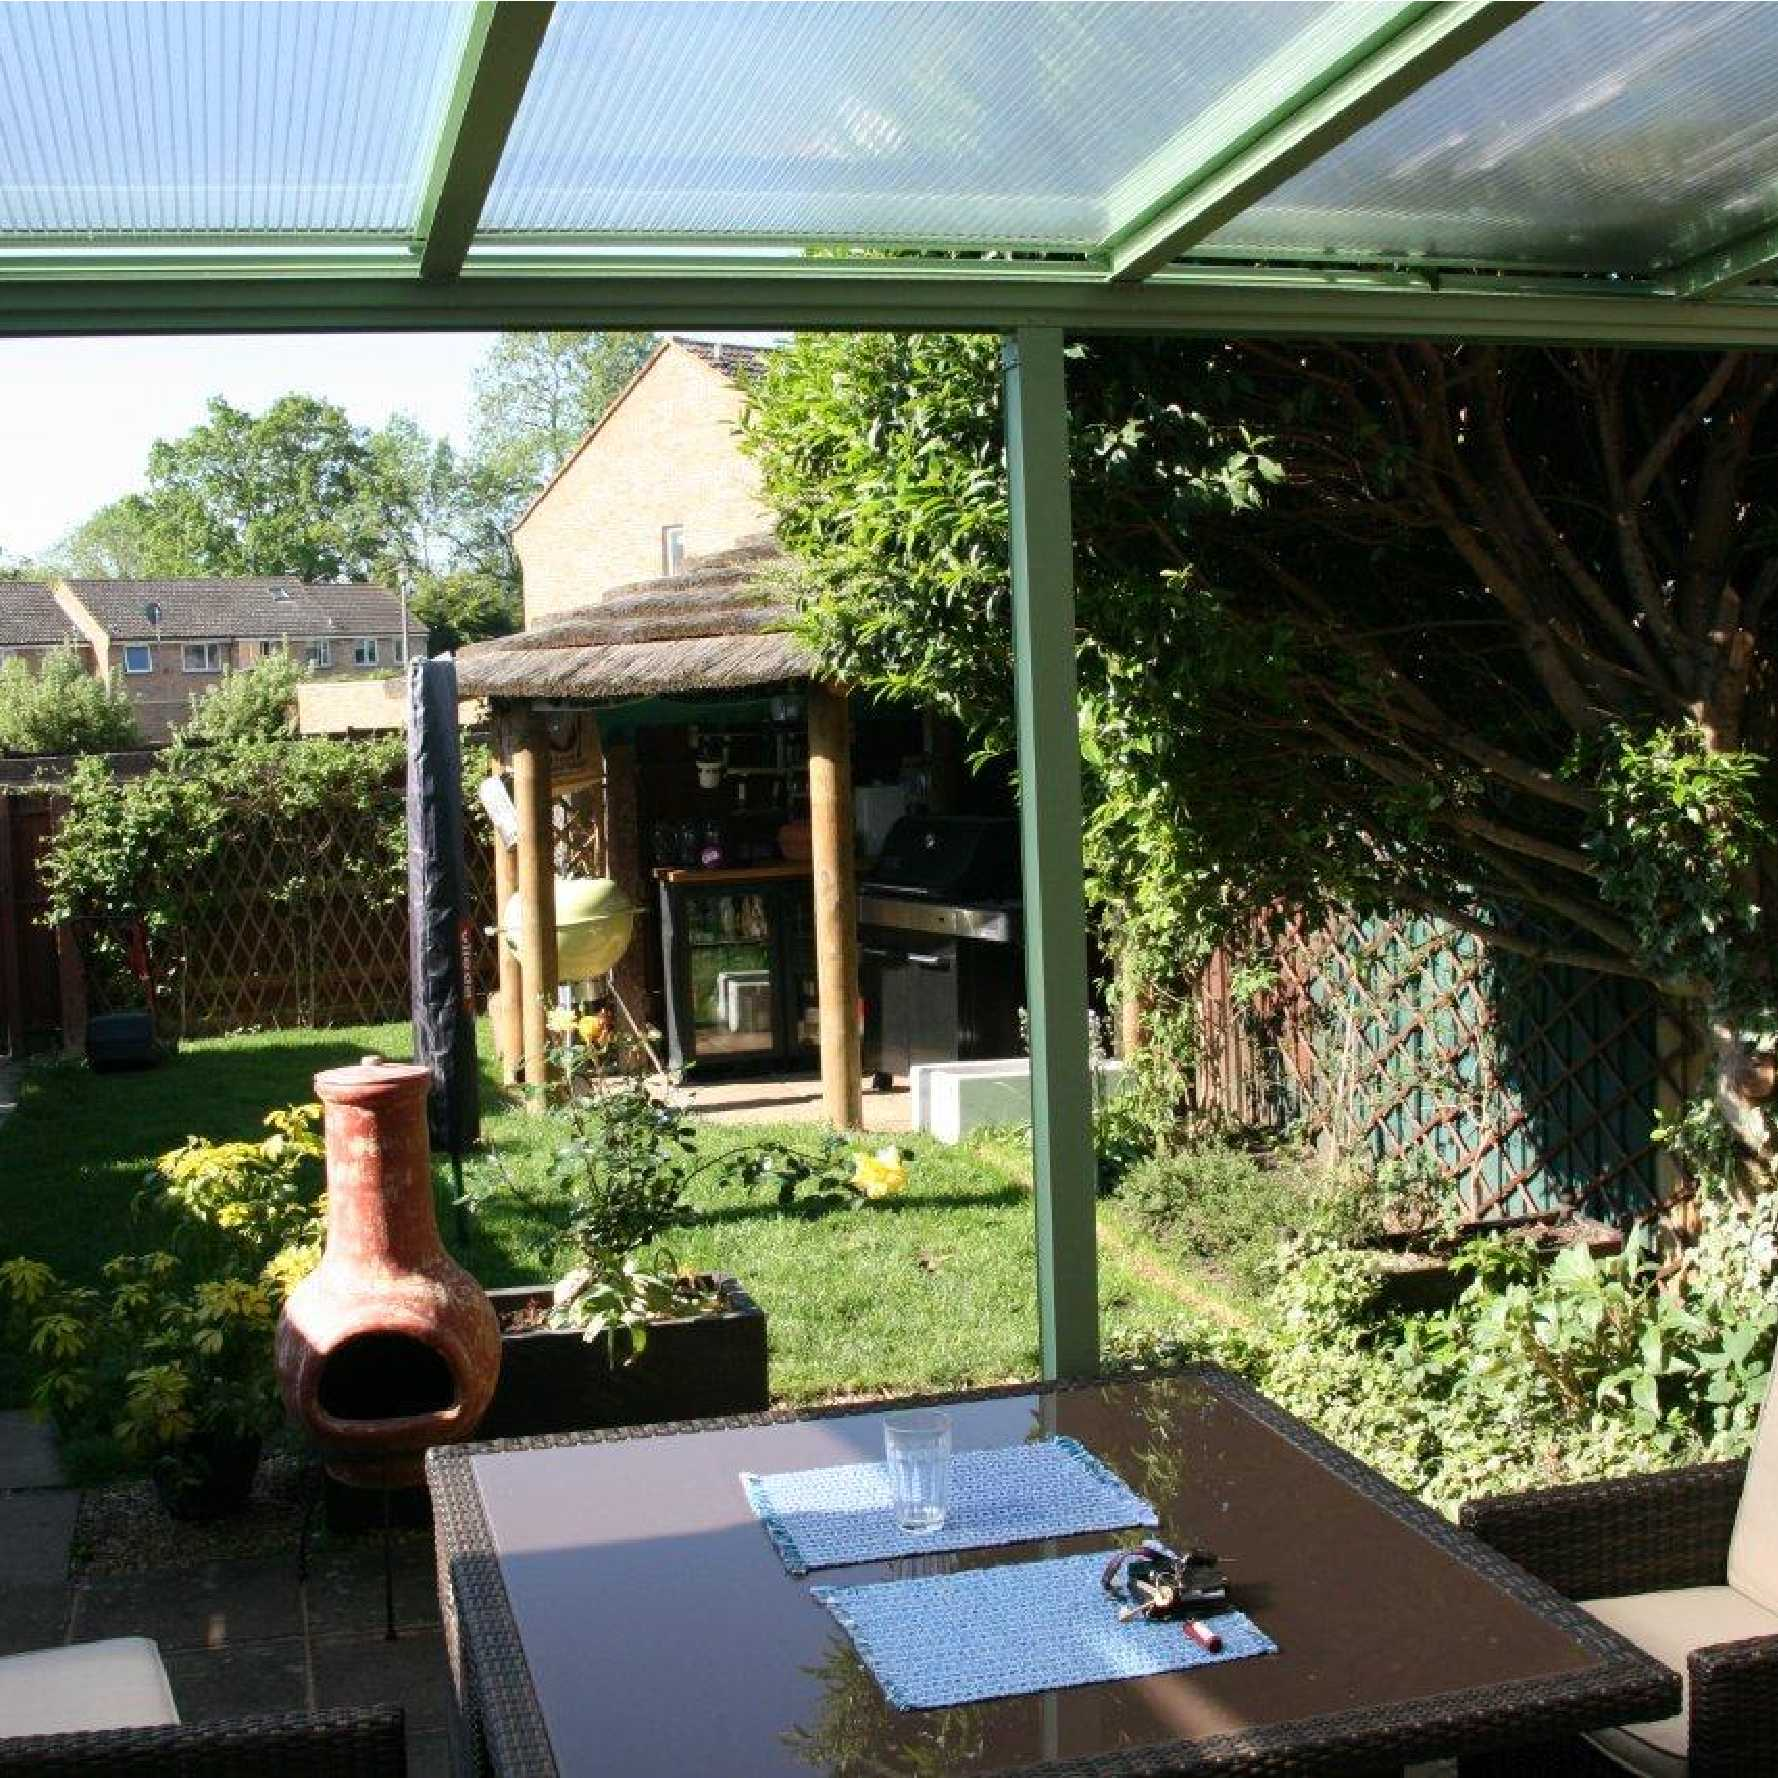 Affordable Omega Smart White Lean-To Canopy with 16mm Polycarbonate Glazing - 3.1m (W) x 2.0m (P), (2) Supporting Posts